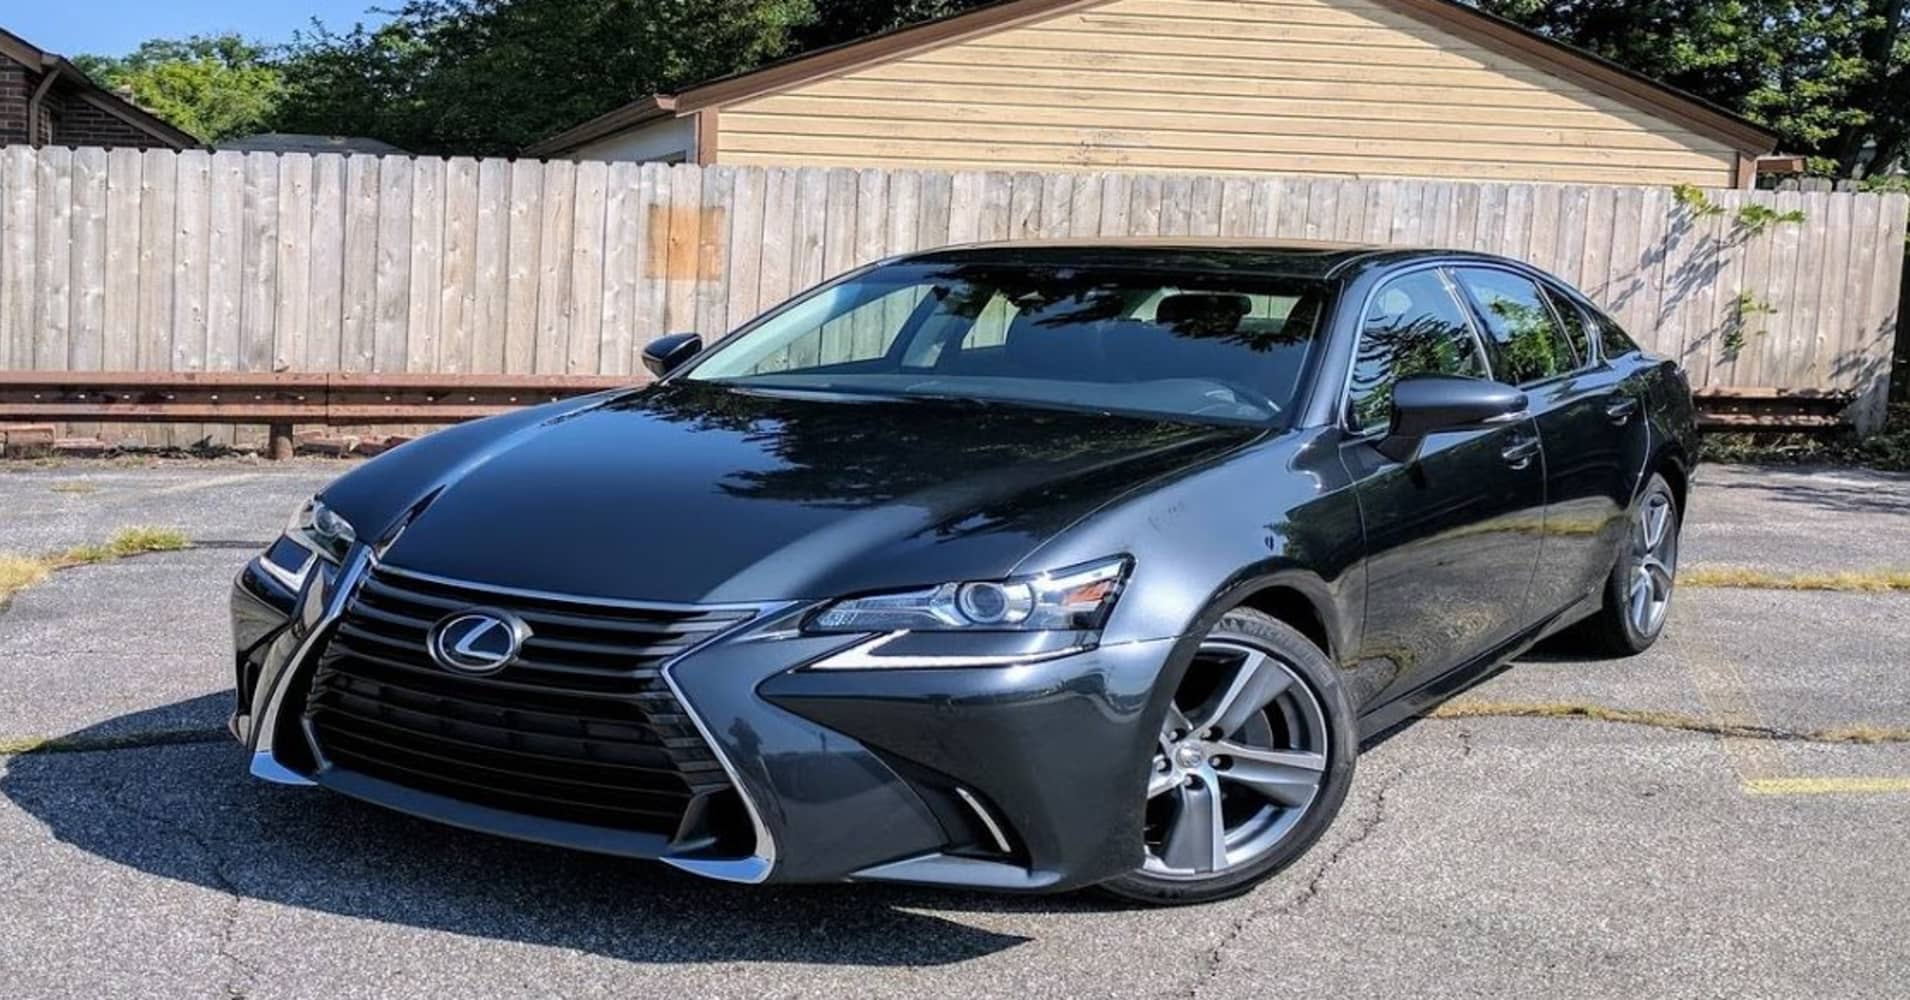 https://fm.cnbc.com/applications/cnbc.com/resources/img/editorial/2017/10/13/104771171-lexus-gs200t.1910x1000.JPG